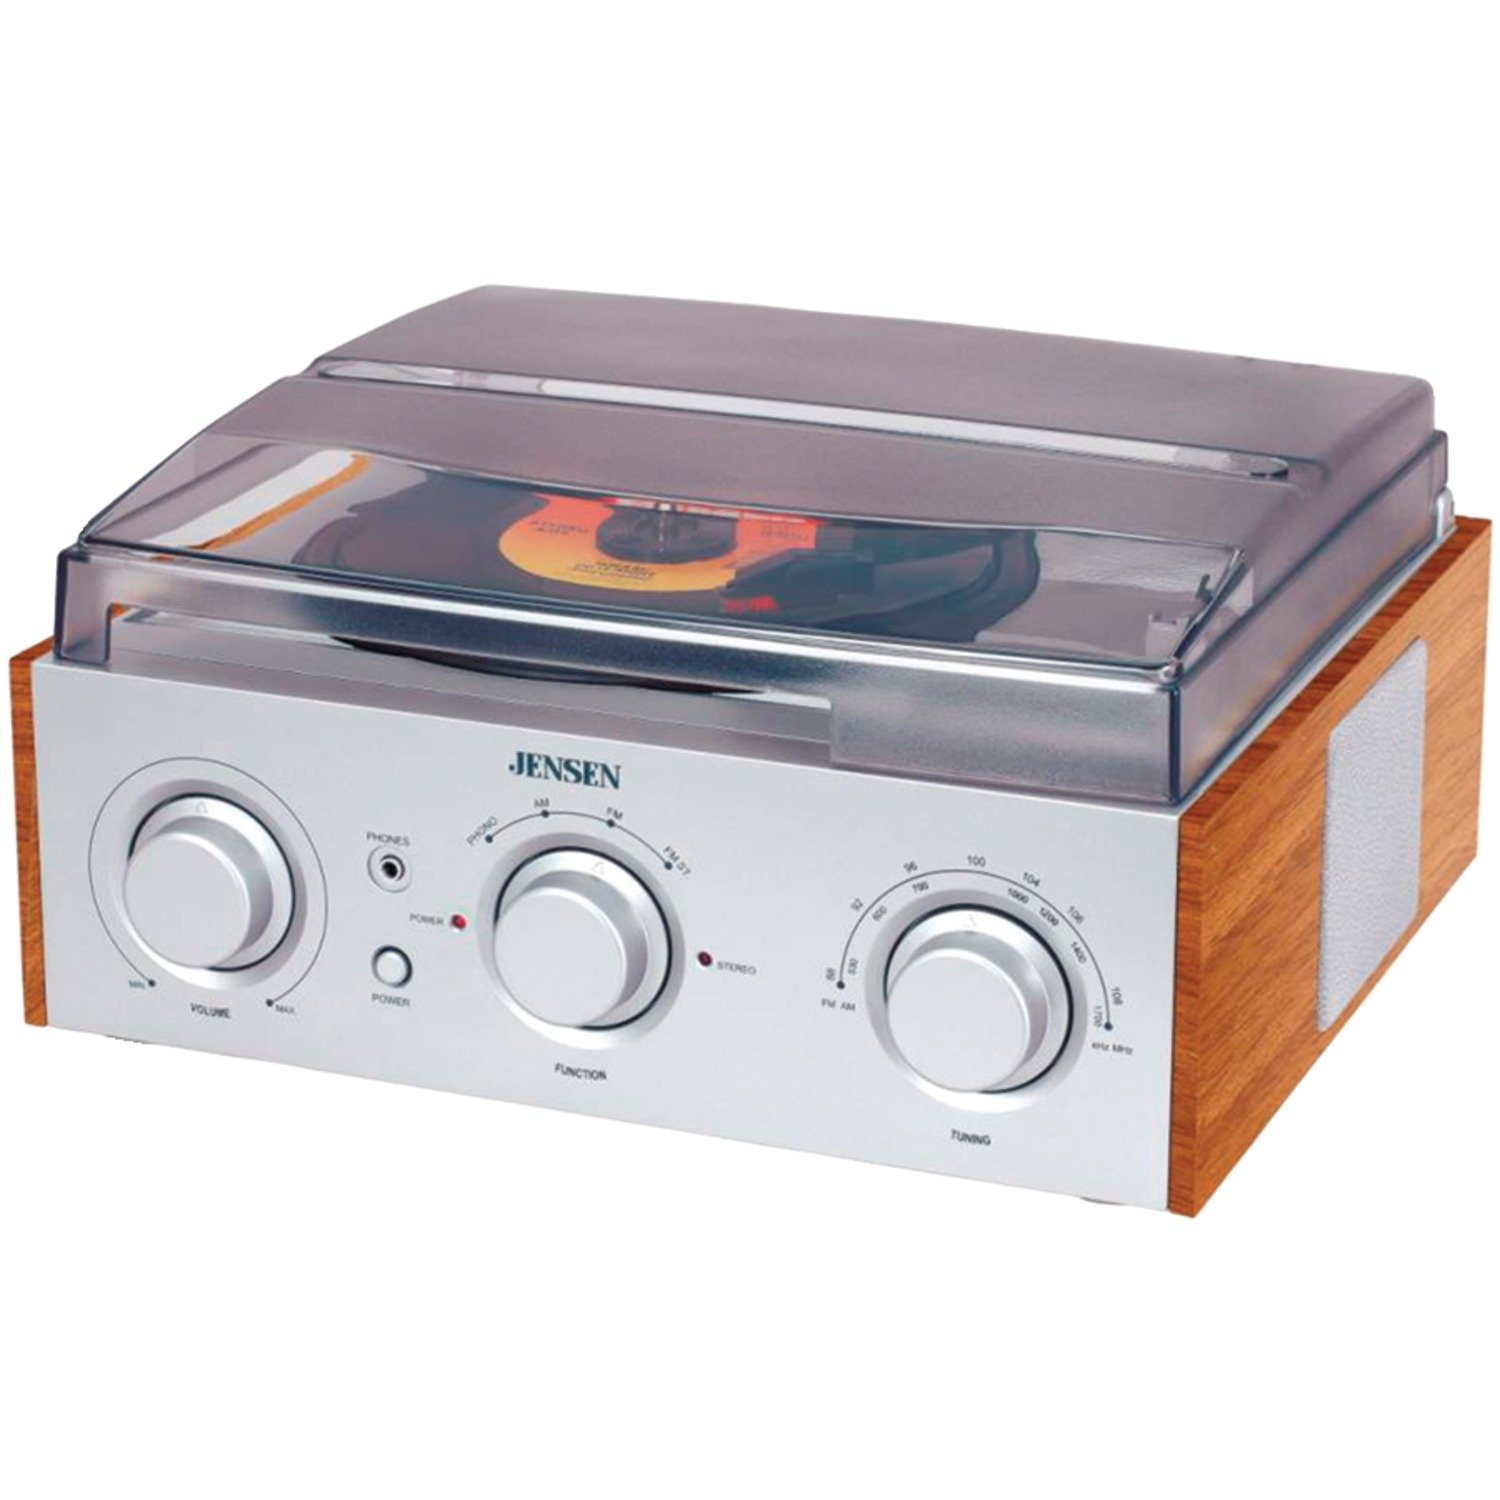 Amazon.com: Jensen 3 Speed Stereo Turntable With AM/FM Stereo Radio  (Silver): Home Audio U0026 Theater